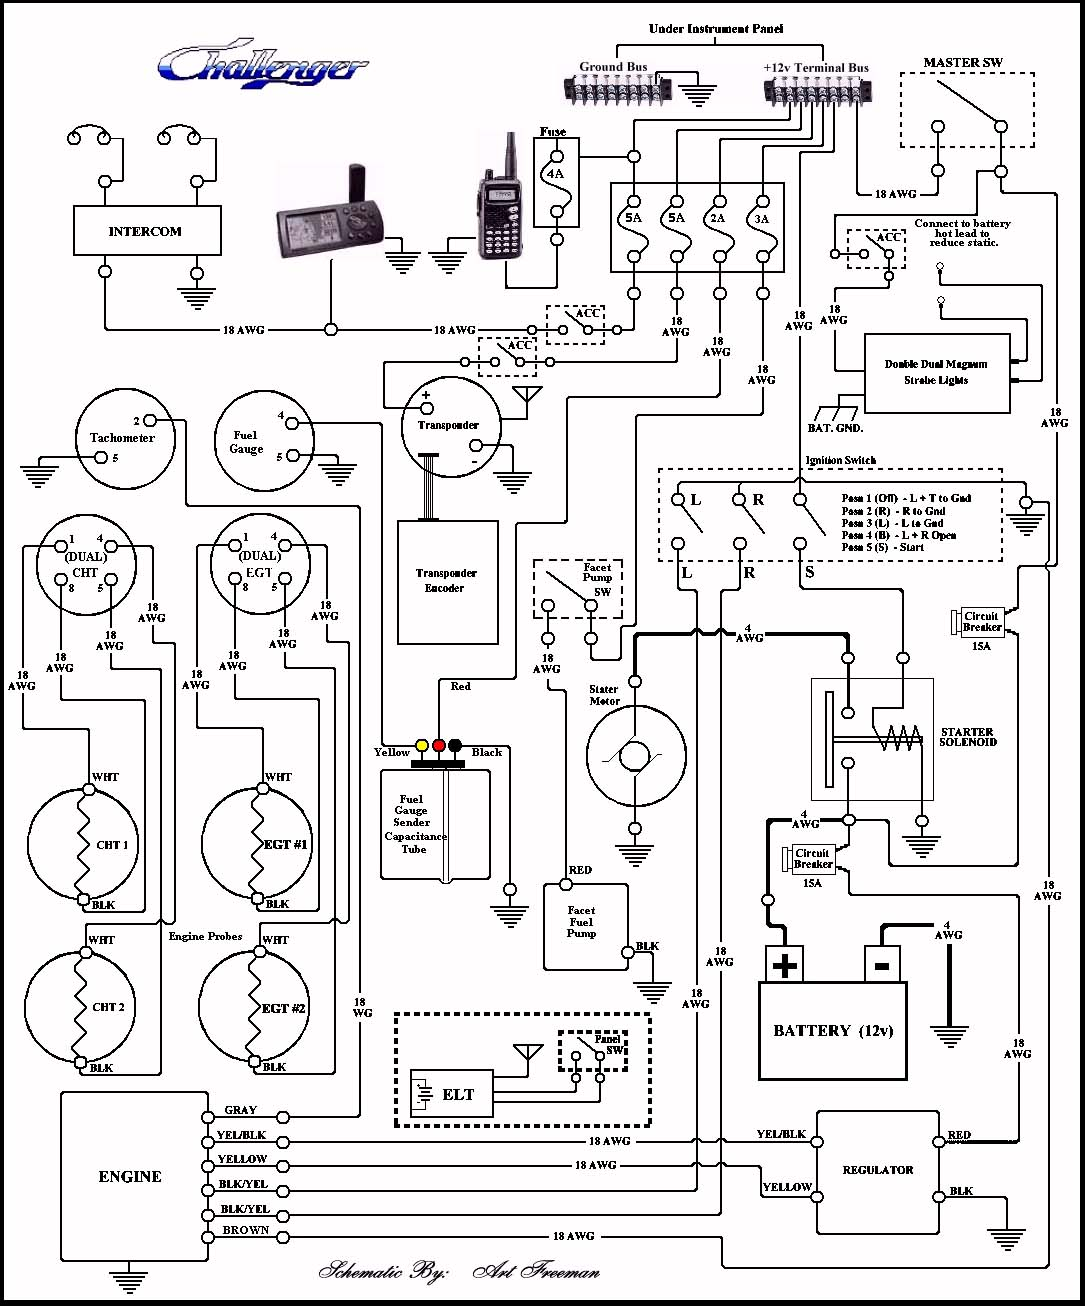 Schem_Analog basic panel wiring diagram wiring diagram simonand basic wiring diagram at fashall.co